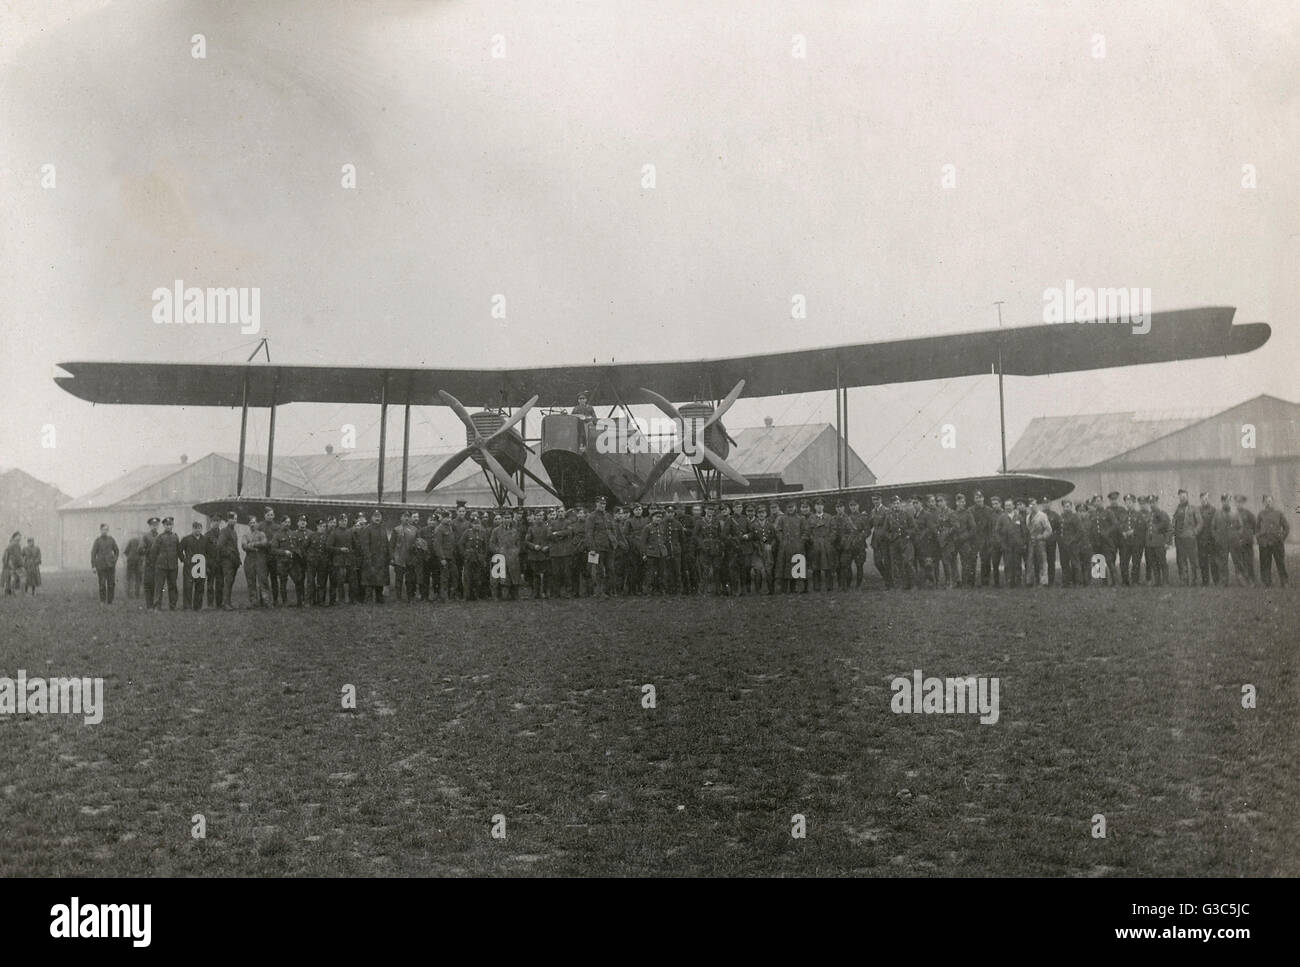 Handley Page biplane, O/400 bomber, with a large group of men standing in front of it on an airfield.      Date: Stock Photo